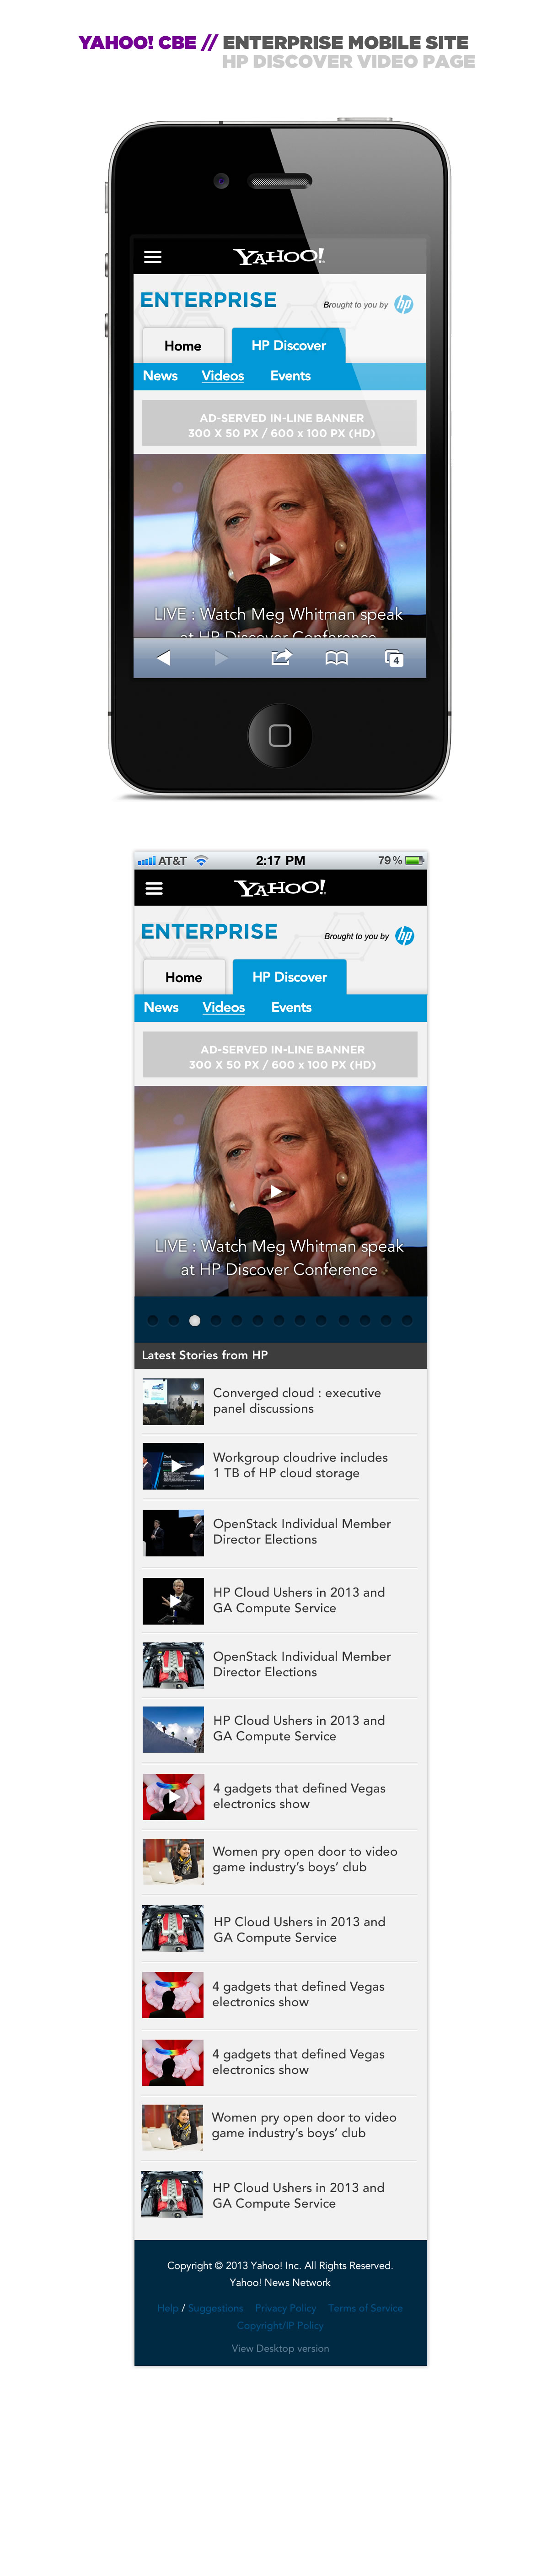 Enterprise_Mobile_hpdiscover-videos.jpg